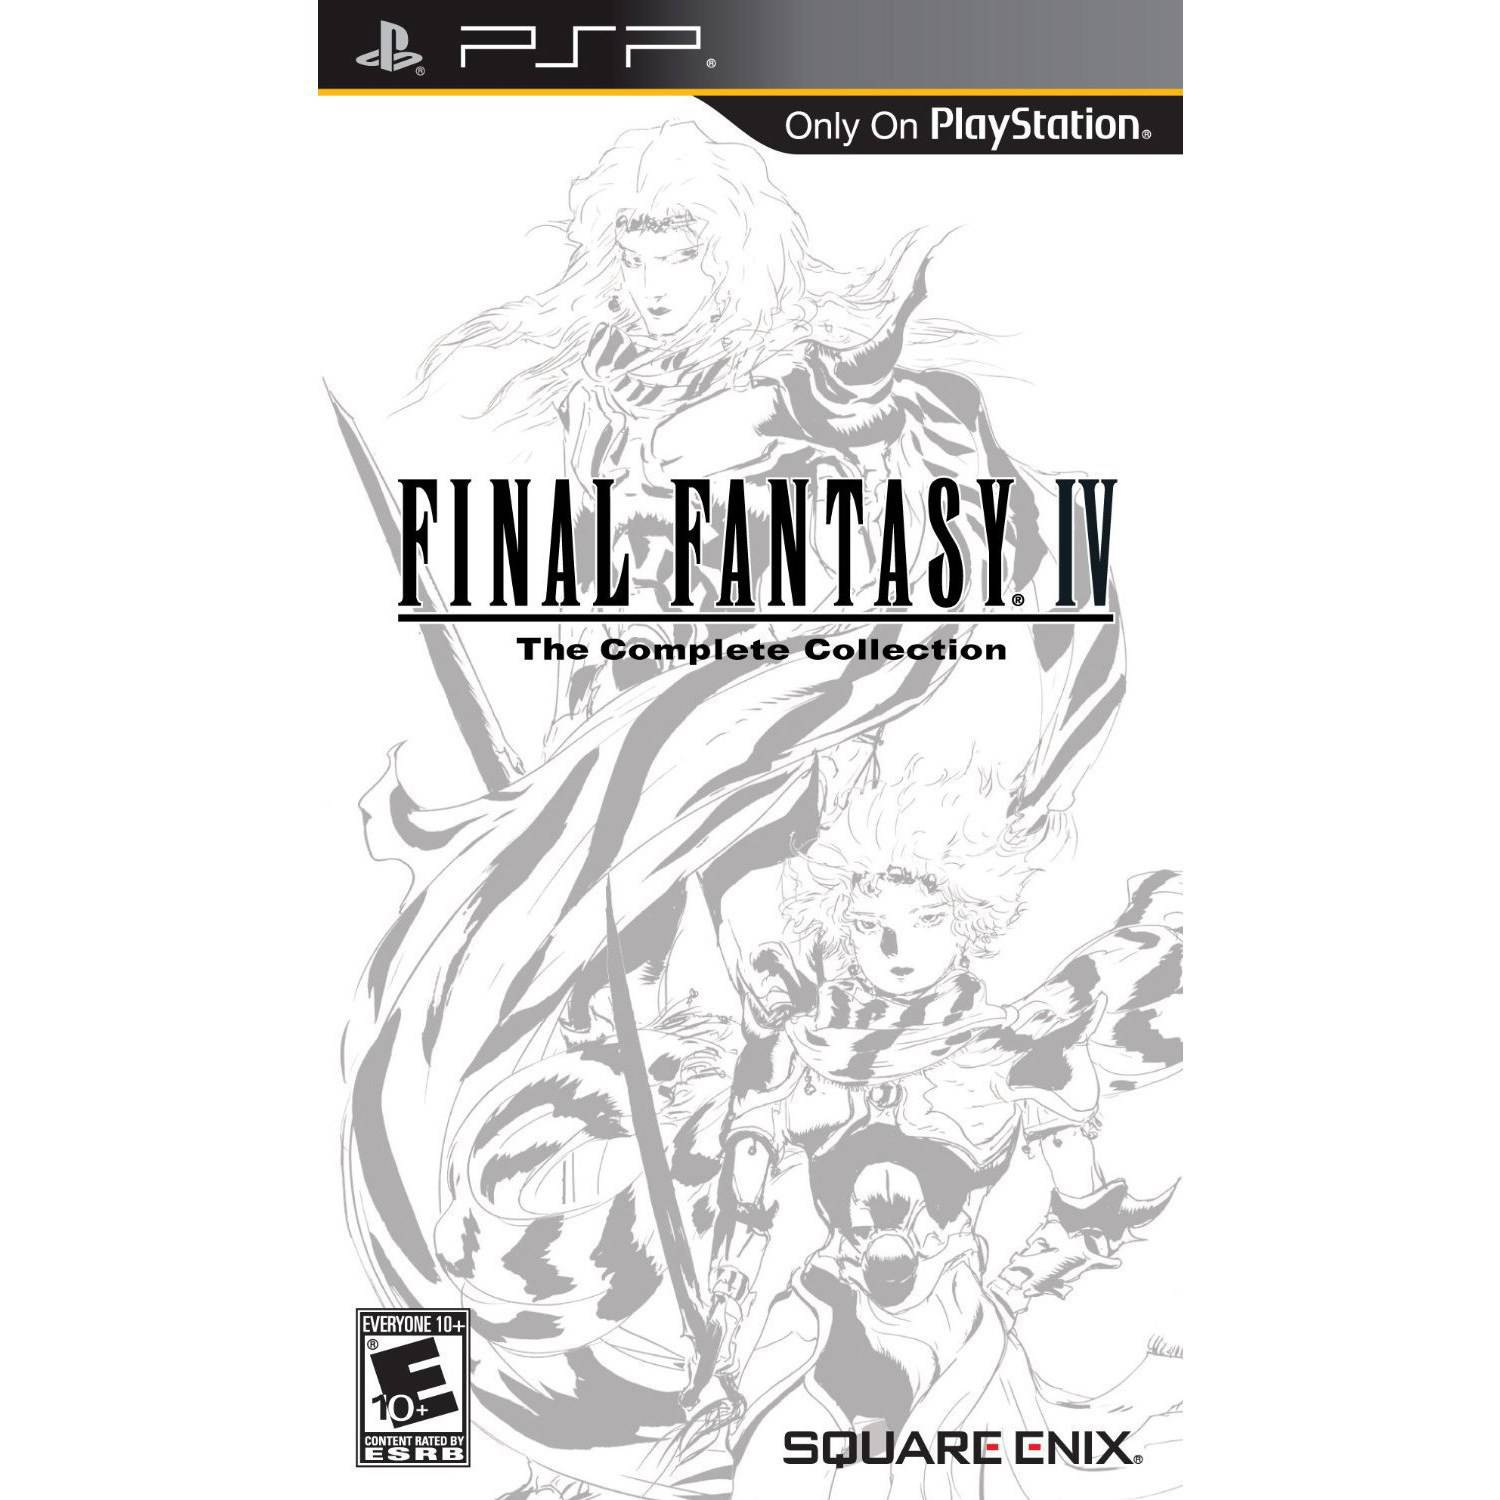 Sony PSP - Final Fantasy IV The Complete Collection